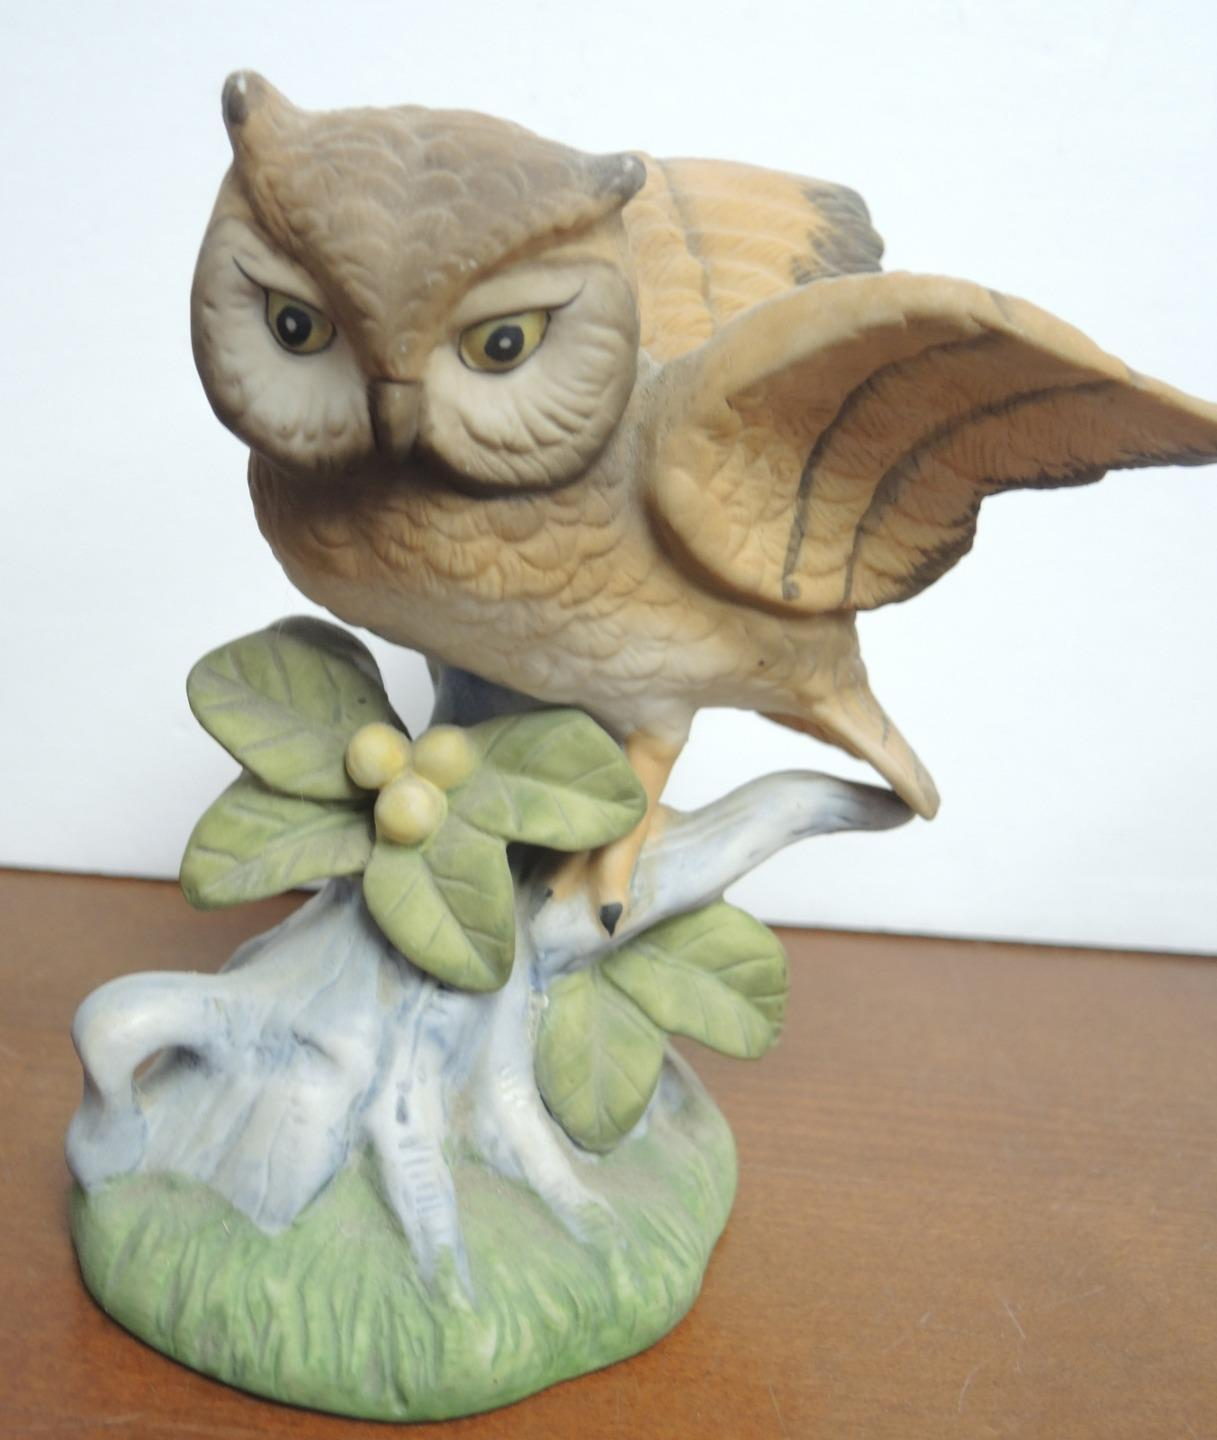 Two Vintage Brown Horned Owls Perched On Leaves & Berries Limb Figurines image 9